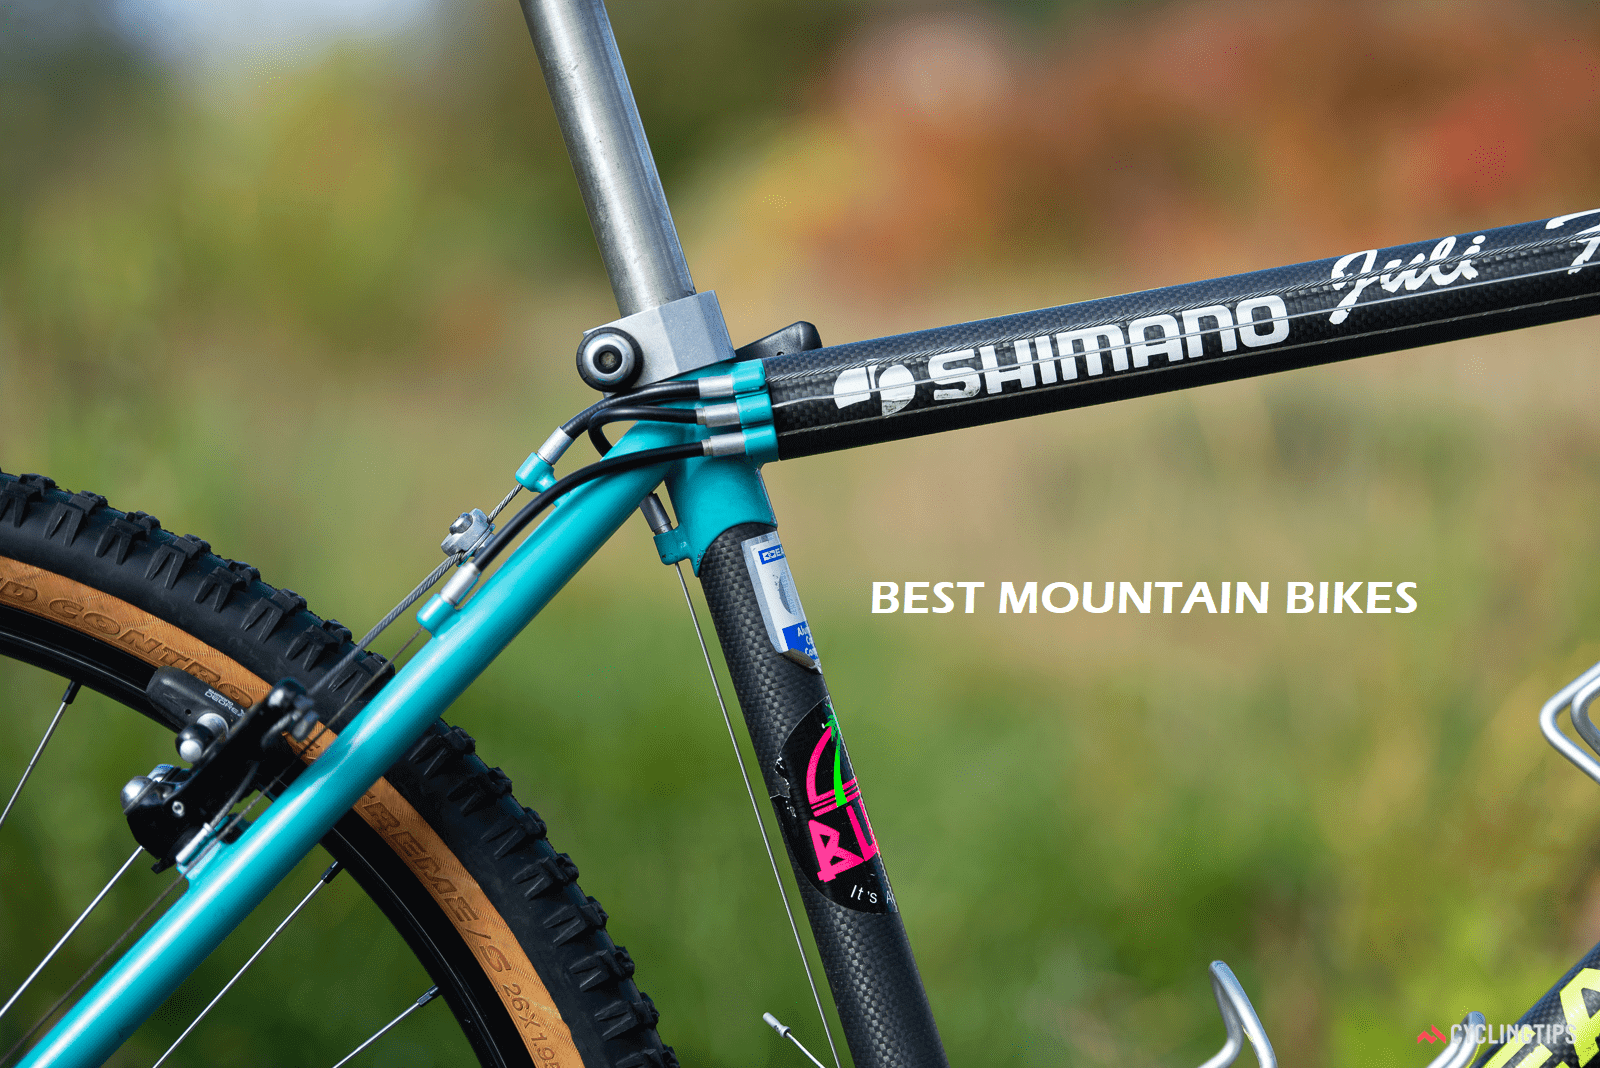 🥇BEST MOUNTAIN BIKES UNDER $500